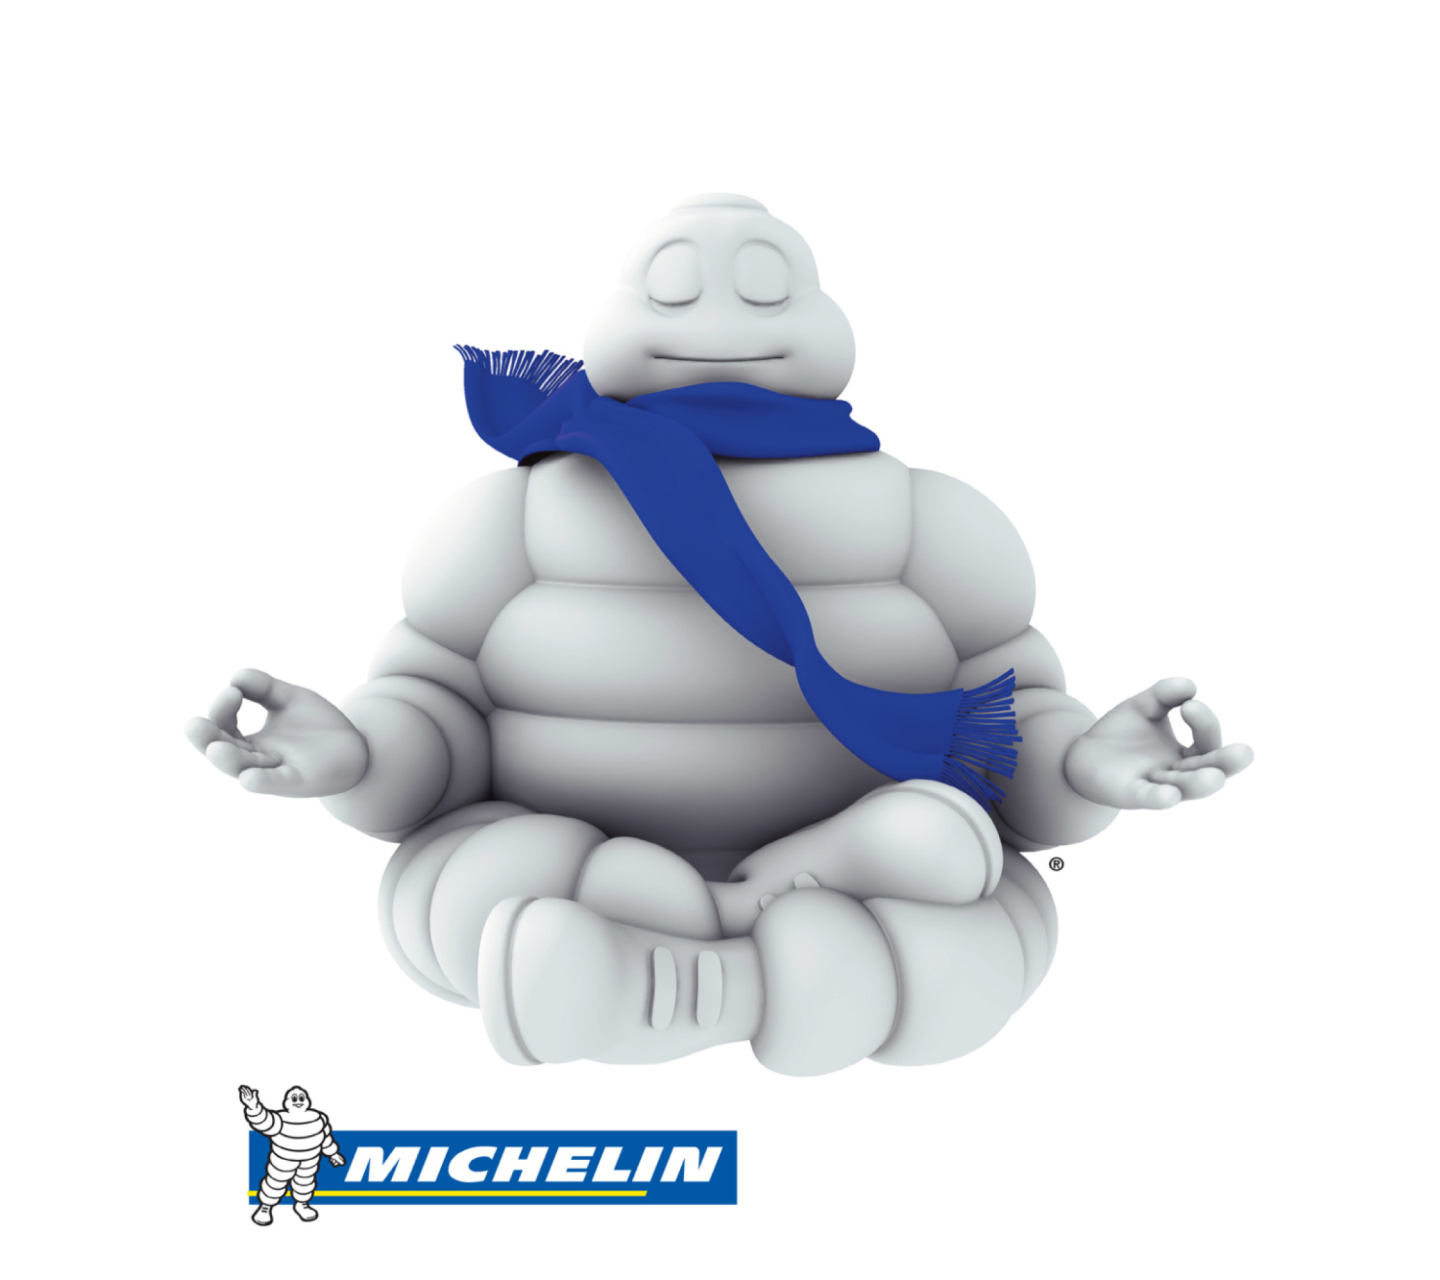 Michelin wallpaper 1440x1280